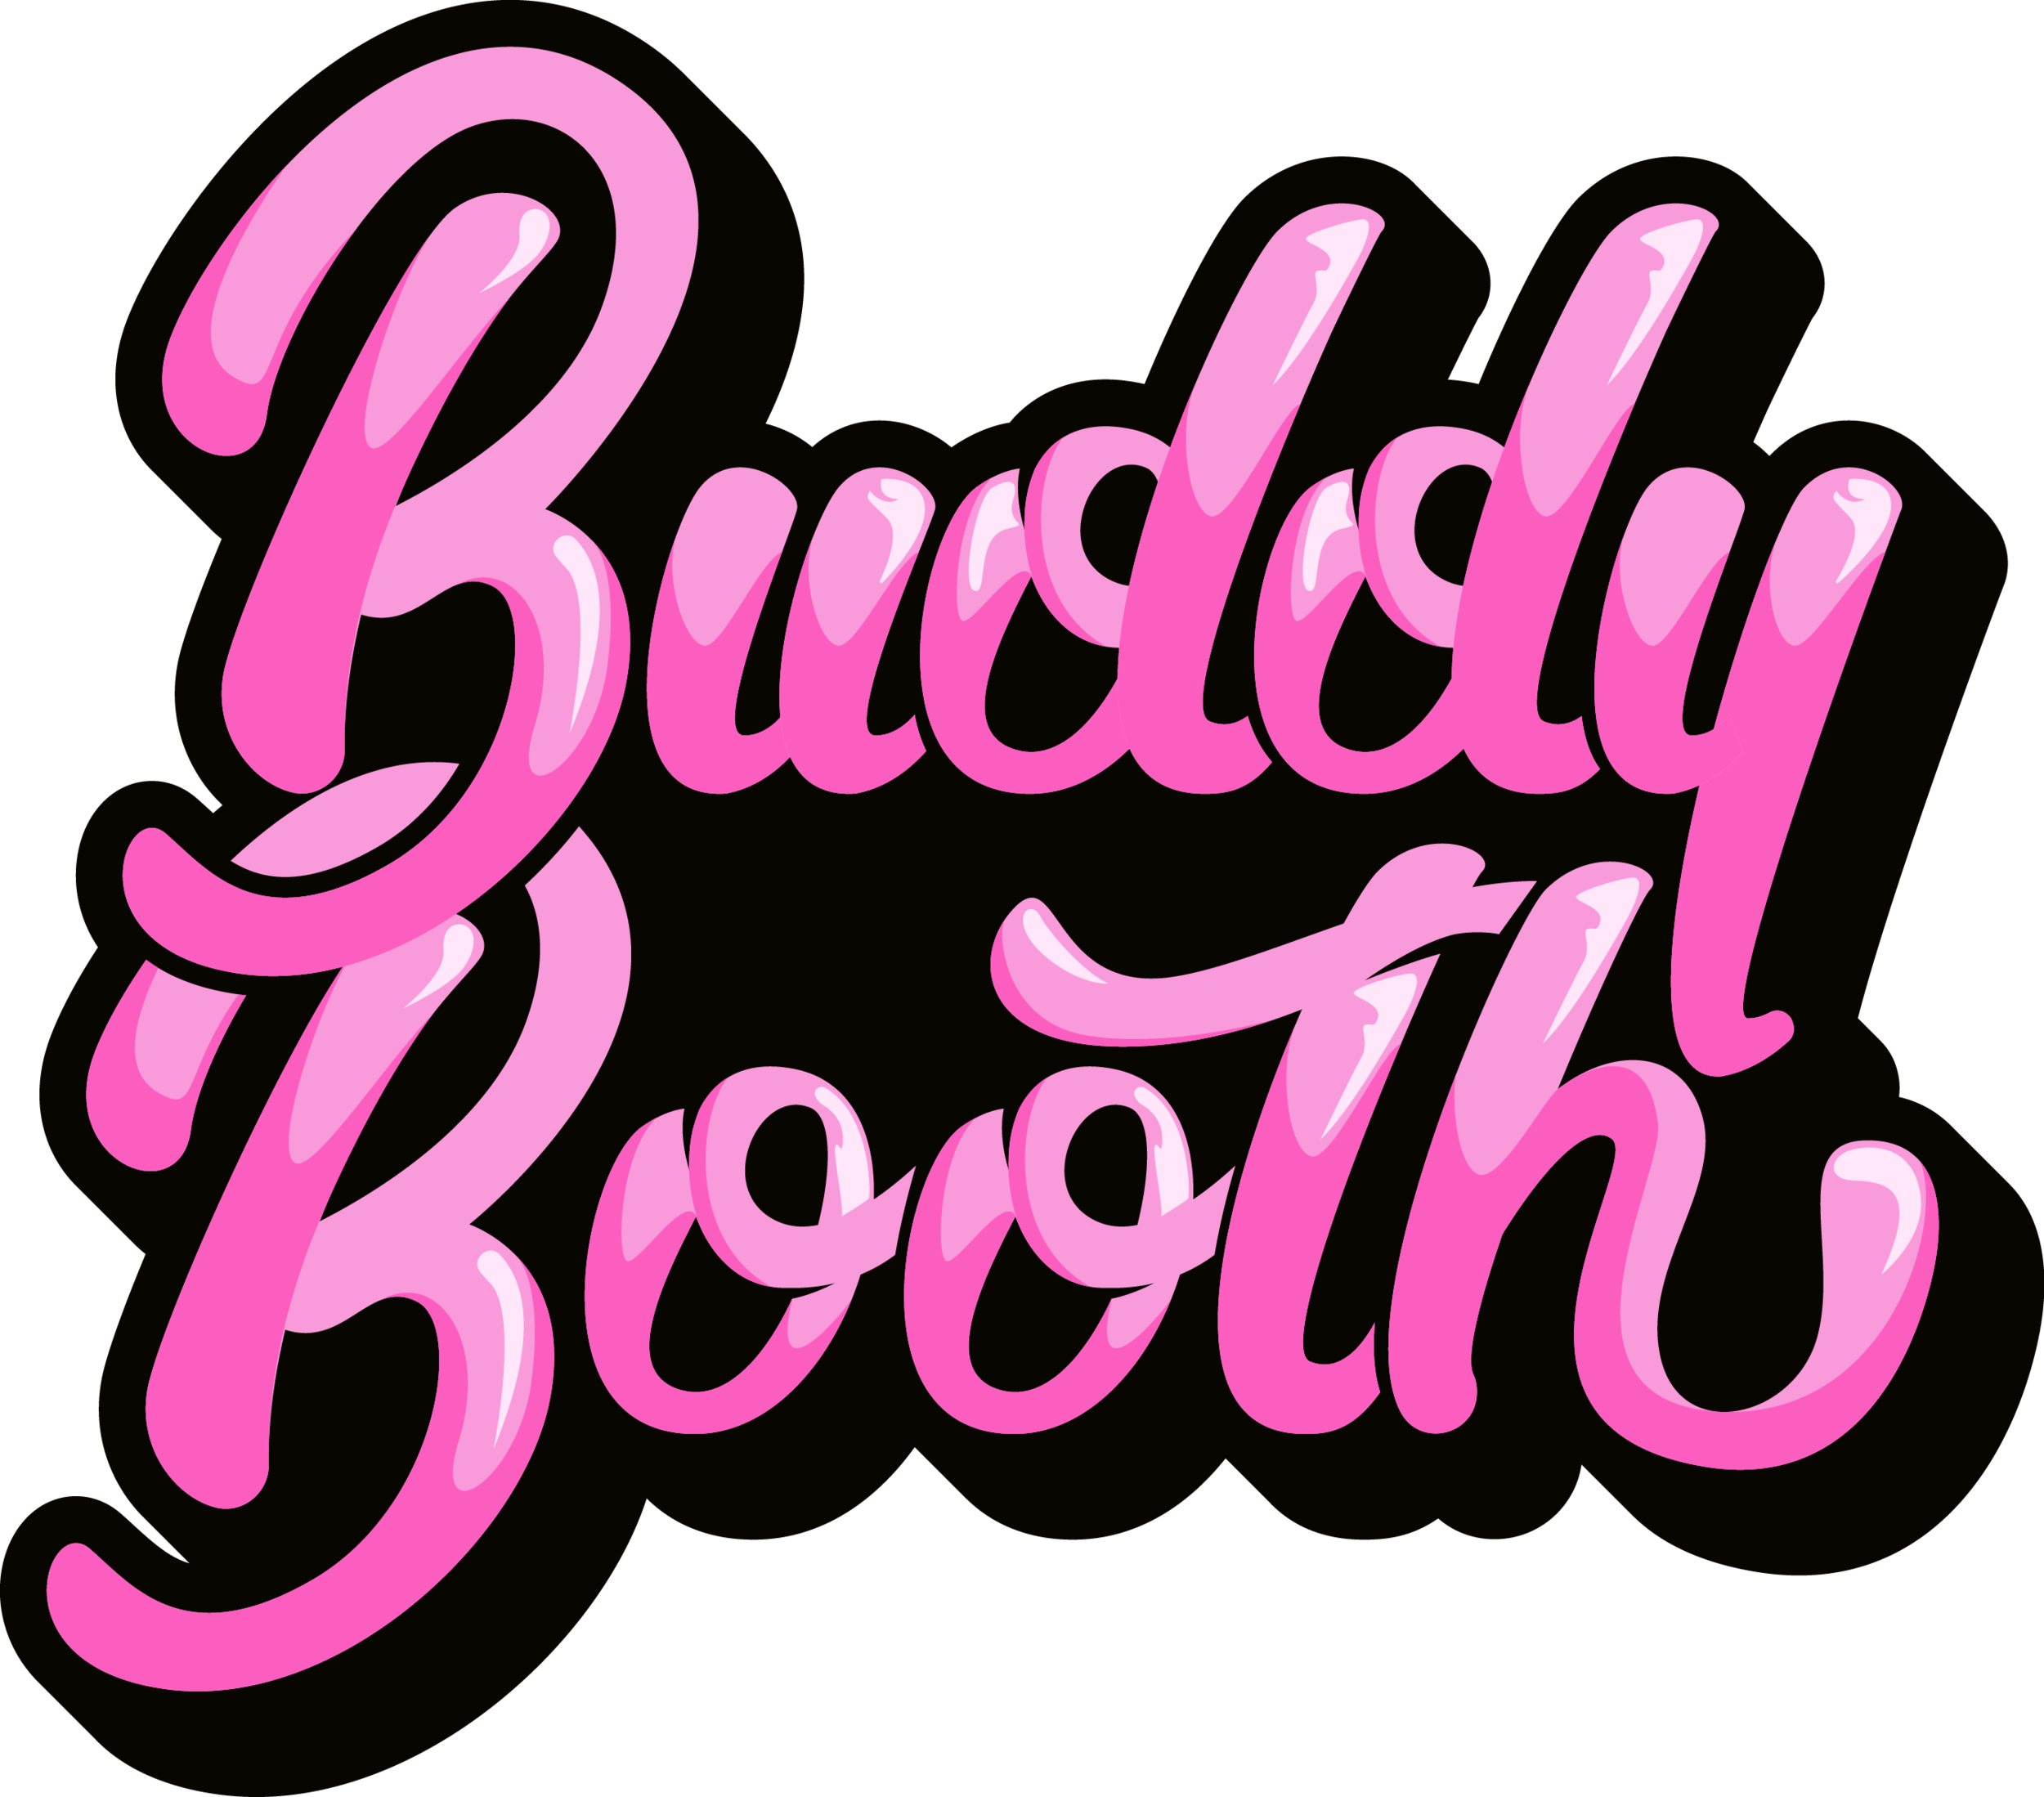 The photobooth your event needs - Grab a buddy & capture the moment!